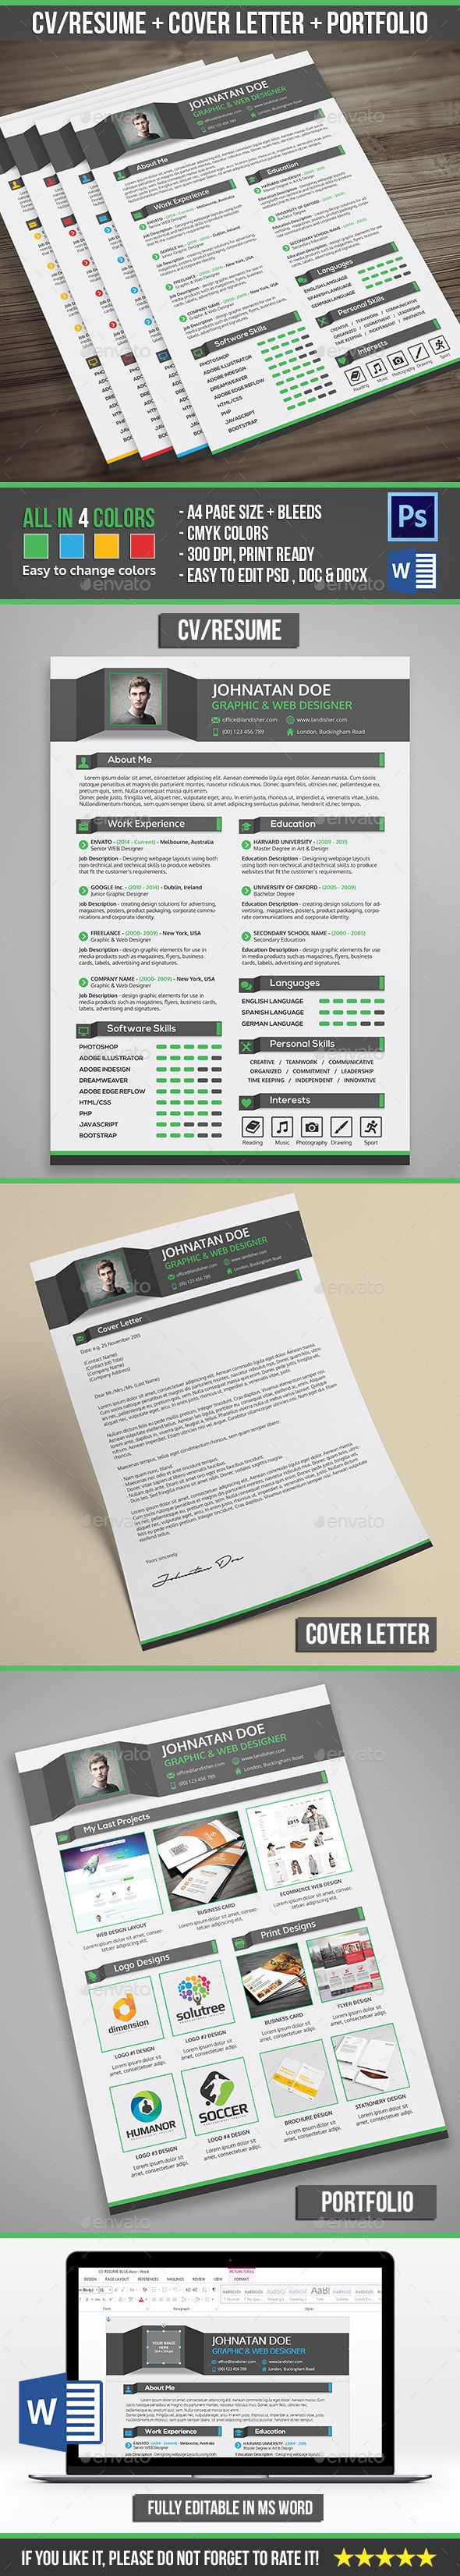 Professional Resume CV + Cover Letter + Portfolio — Photoshop PSD #job #curriculum vitae • Available here → https://graphicriver.net/item/professional-resume-cv-cover-letter-portfolio/13576092?ref=pxcr